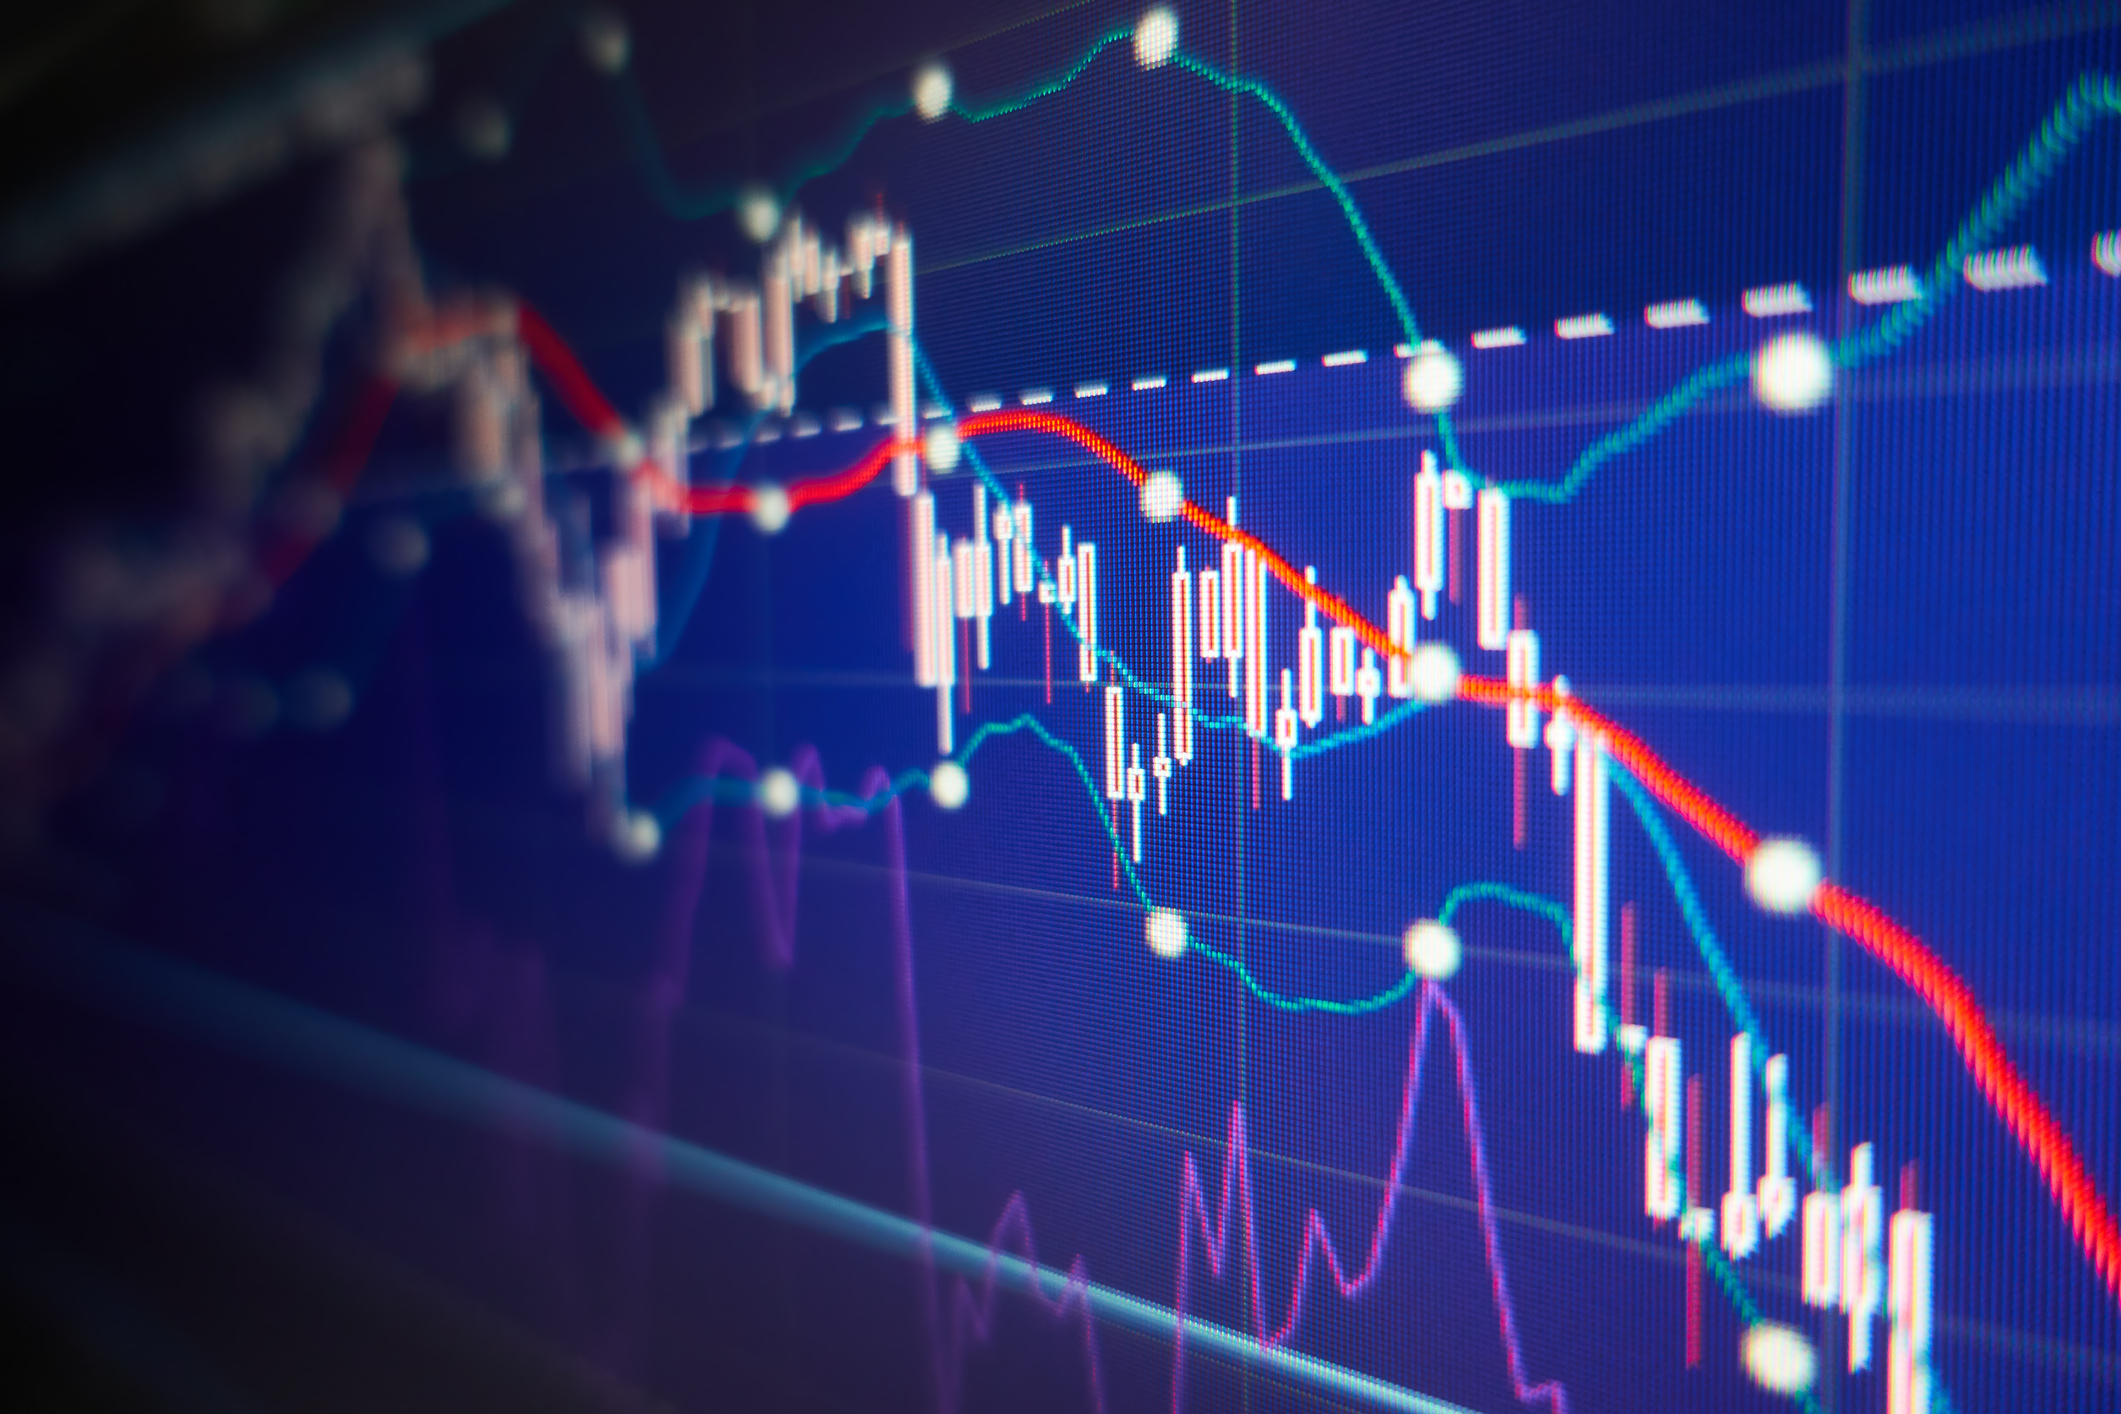 Stock market graphs and charts. Image credit: iStock